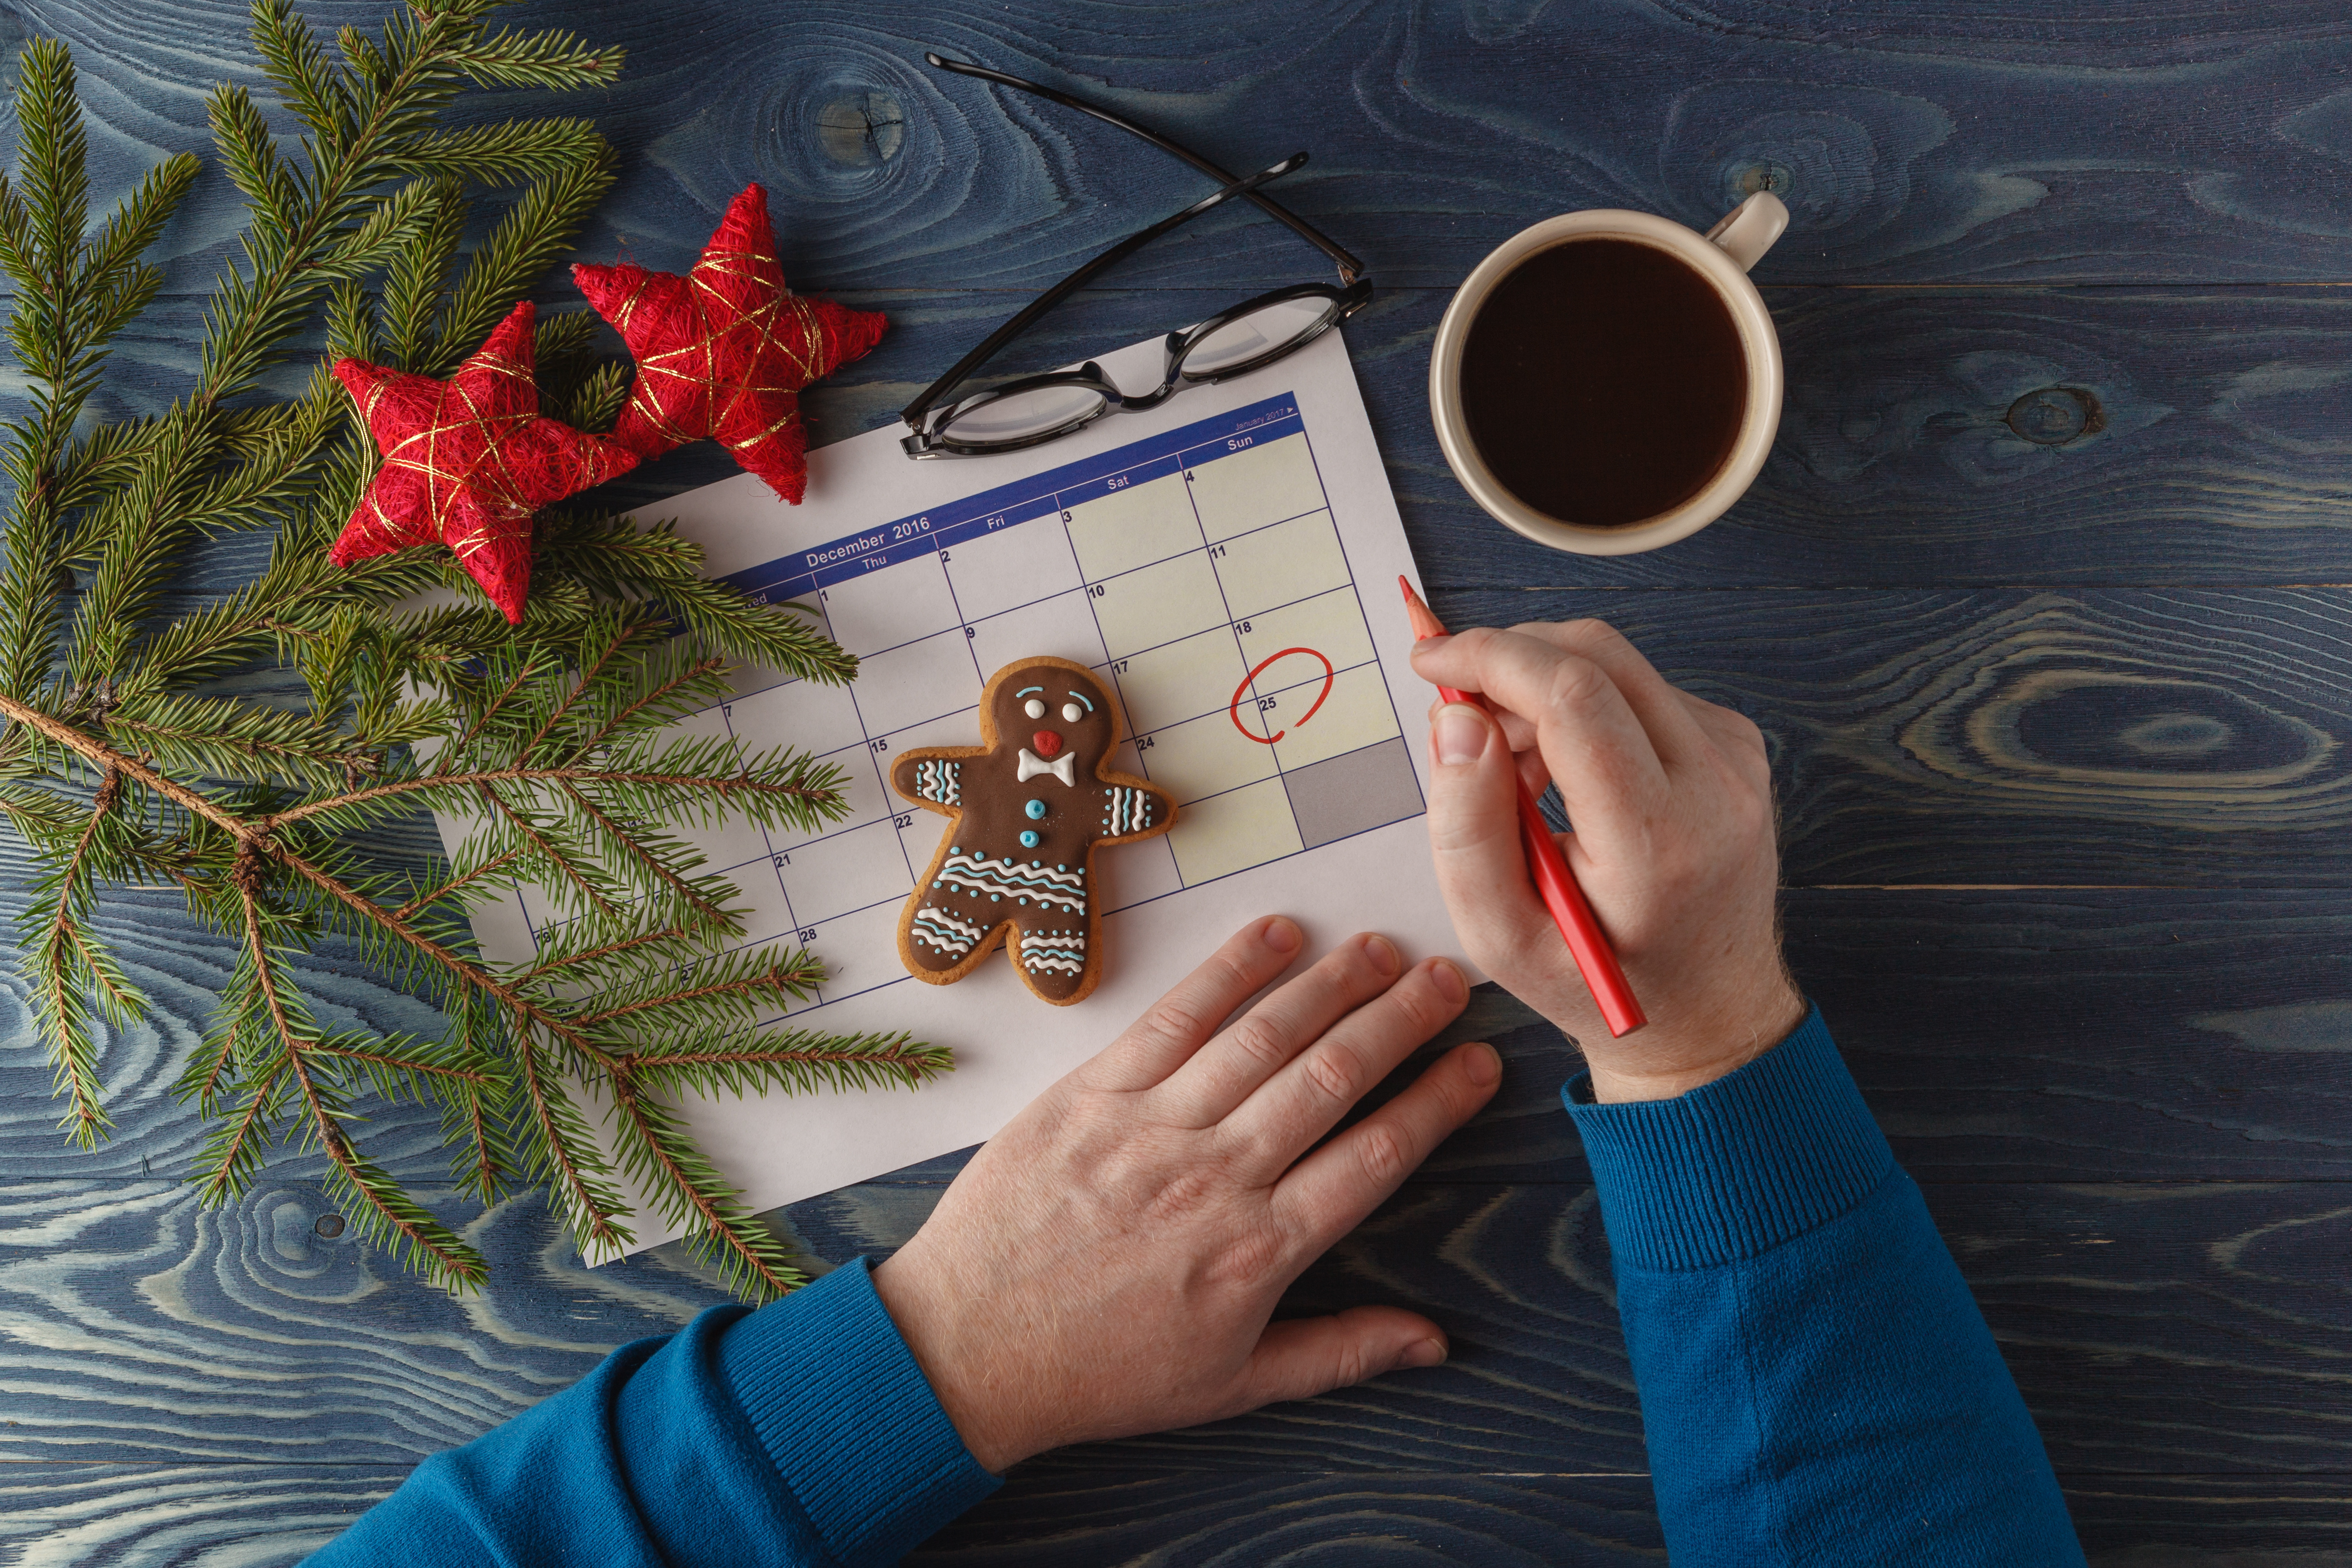 How To Keep Your Team Productive During The Holidays